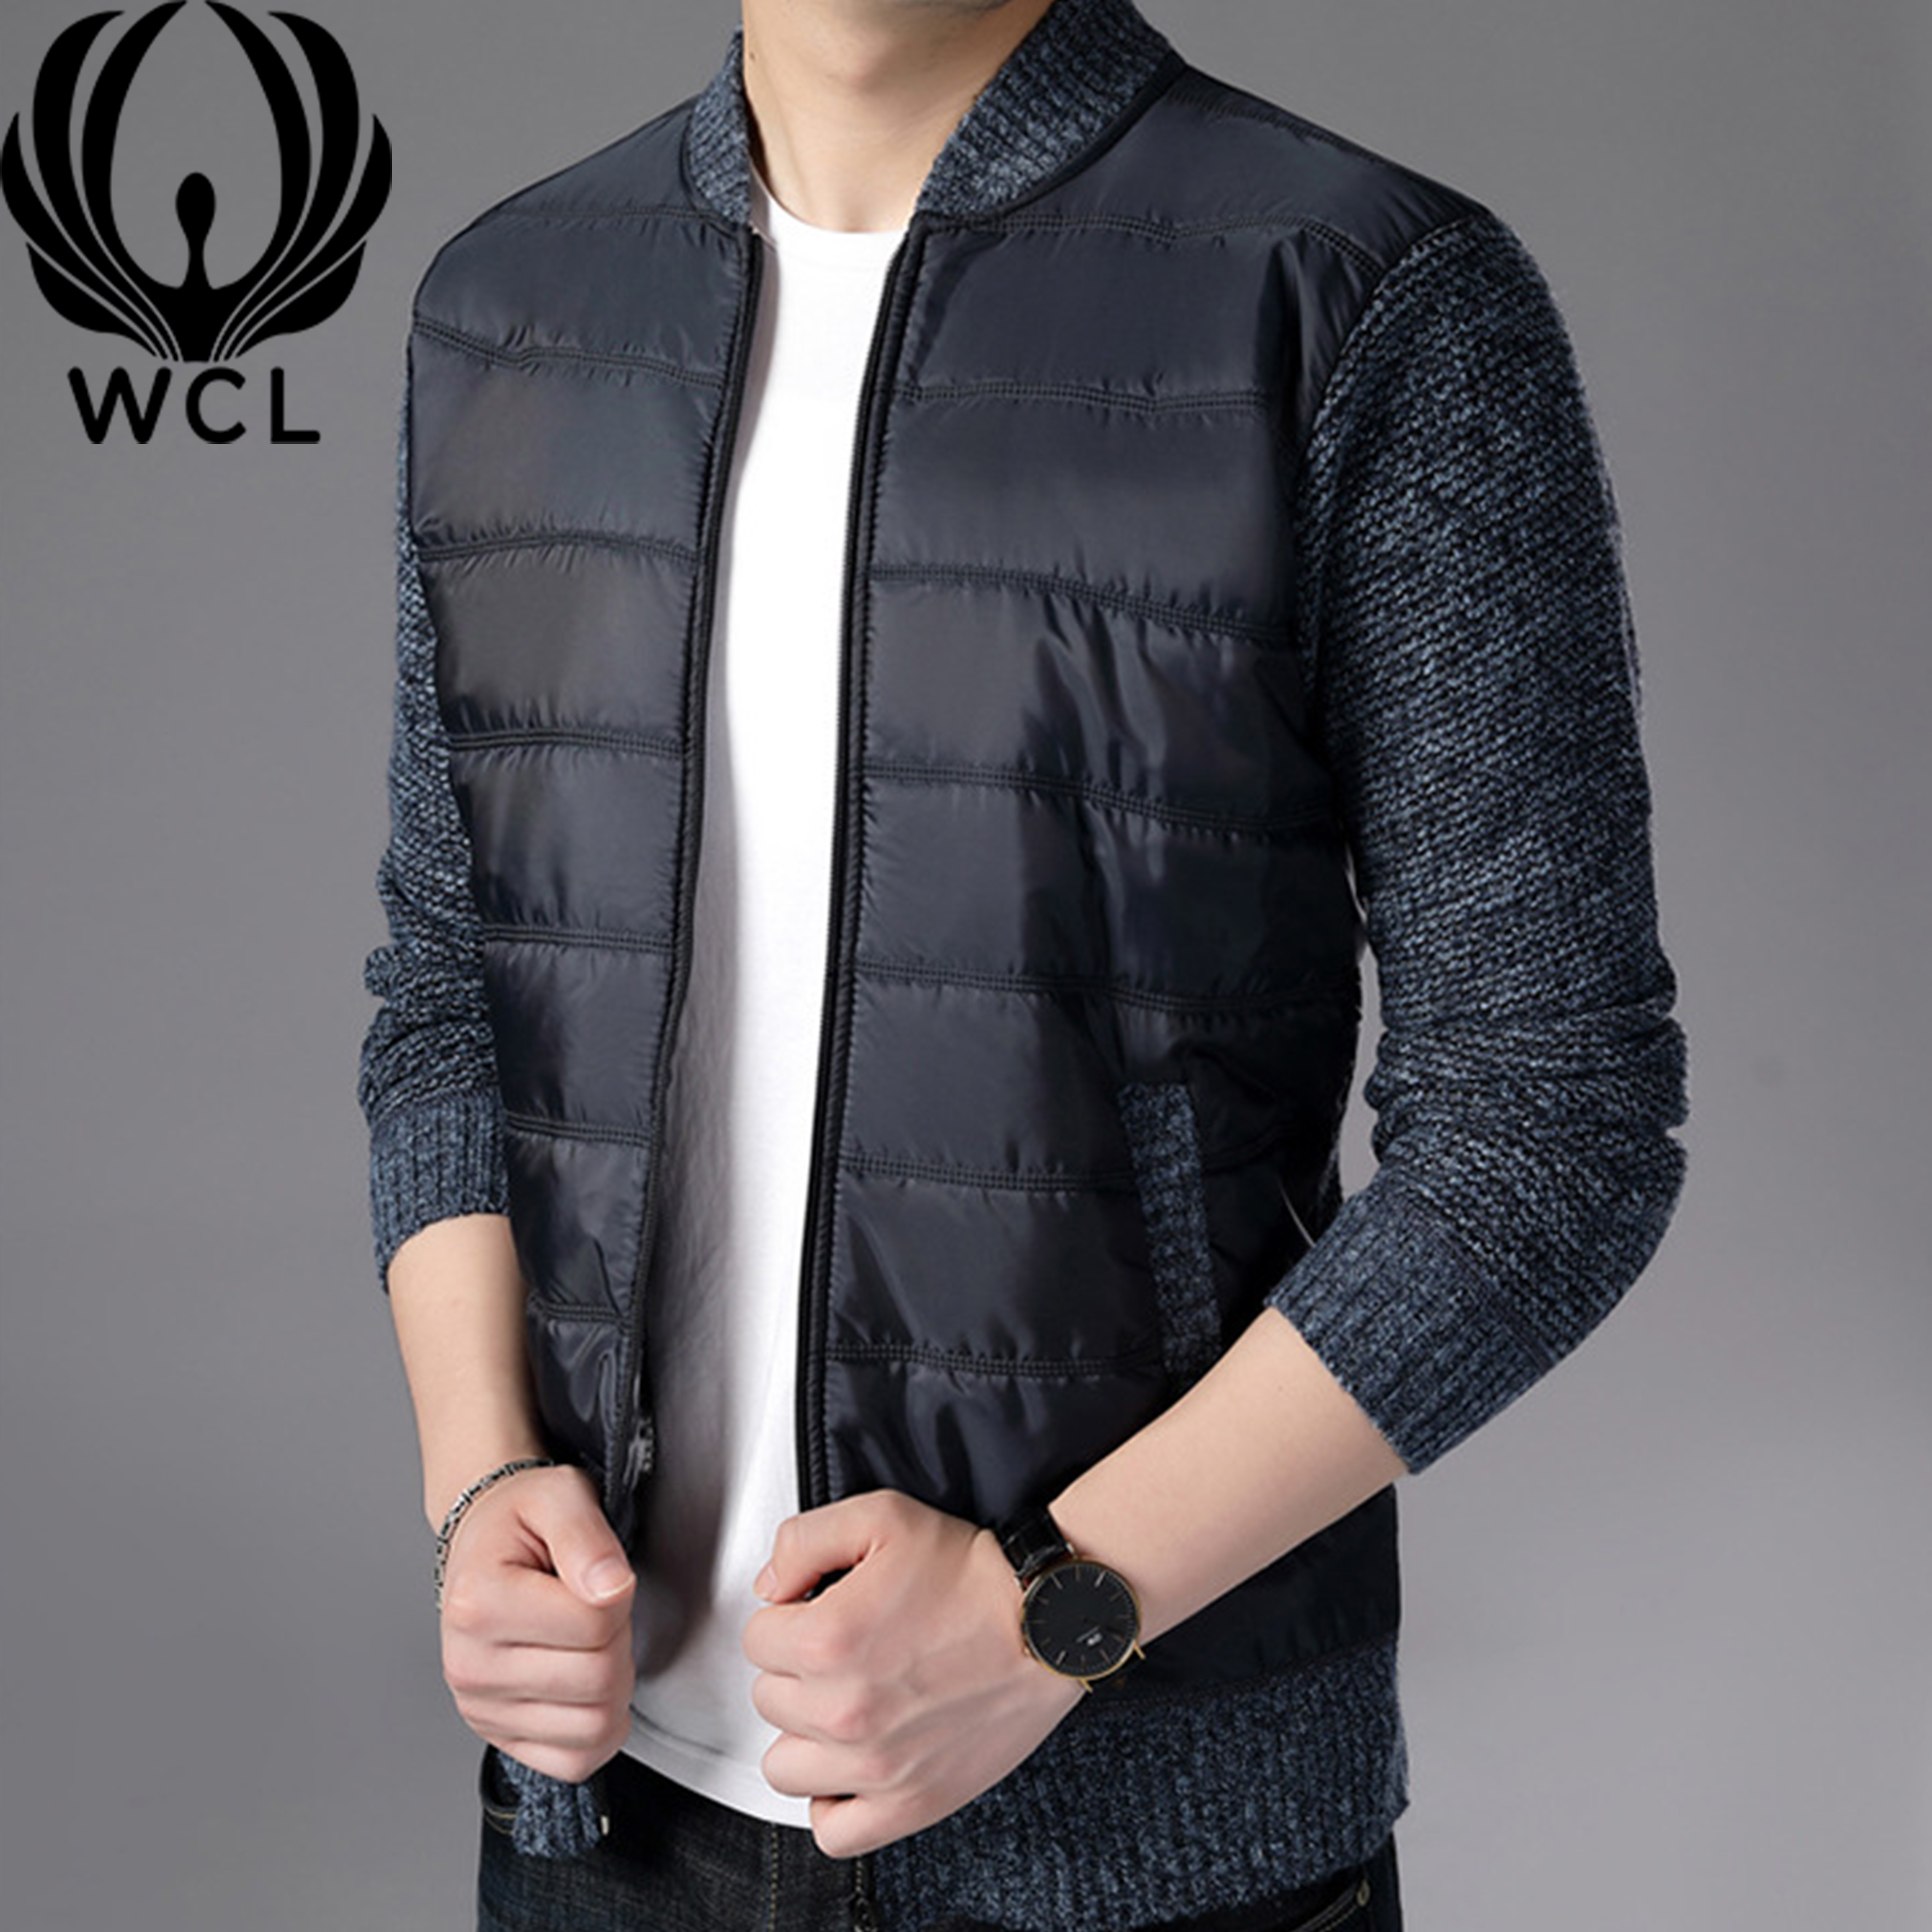 Casual Warm Knitting Up Open Front Velvet Coat Classic Long Sleeve Man Thick Loose Stand-up Collar Cotton Zip Cardigan Sweater